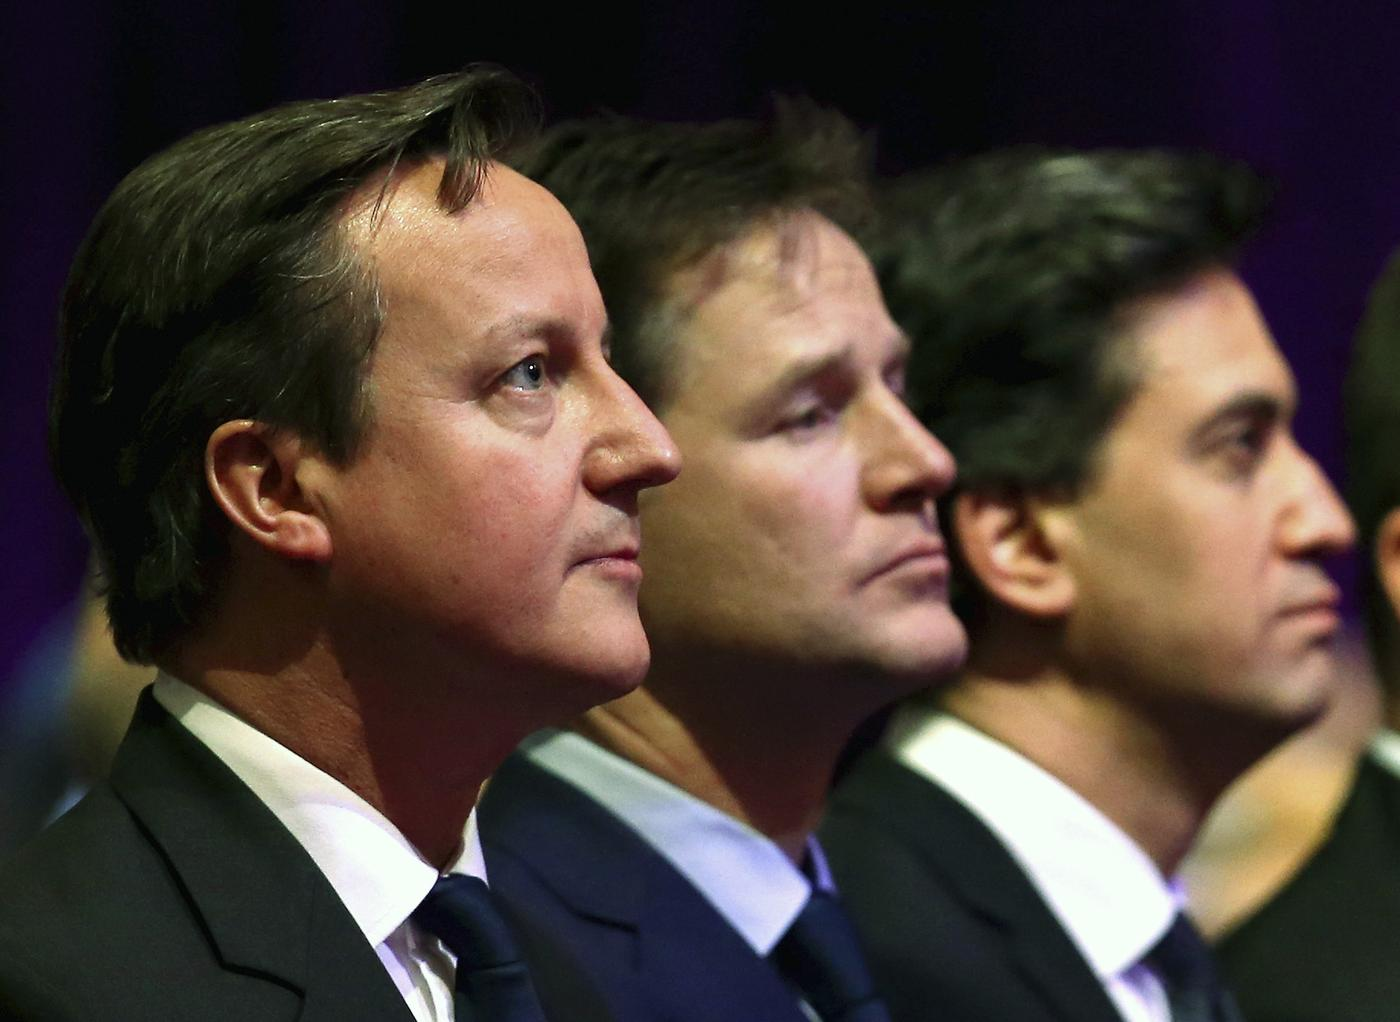 Aged 18-24? These are the questions you should be asking party leaders